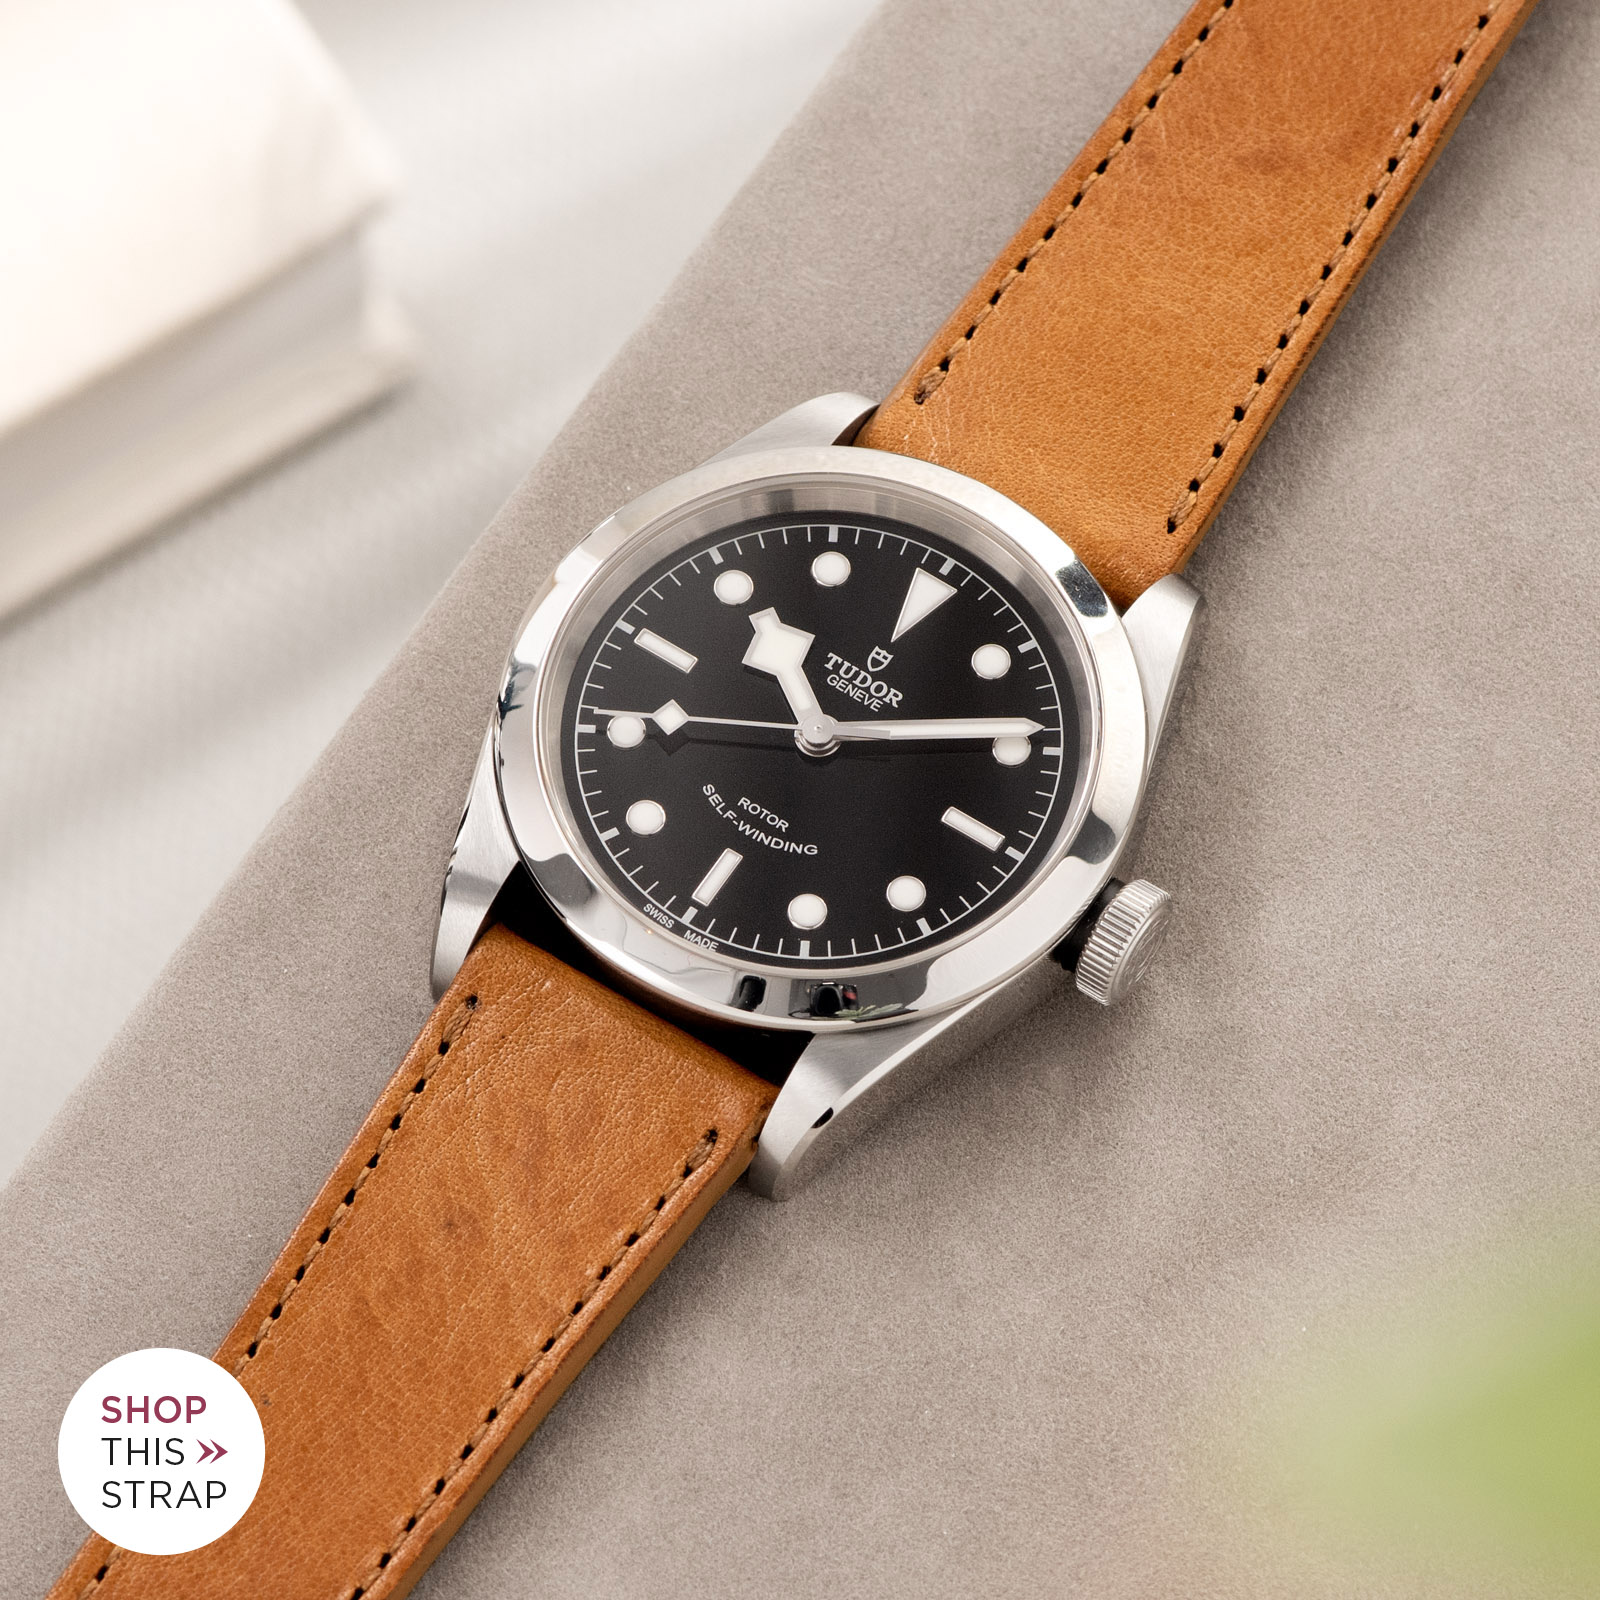 Bulang and Sons_Strap Guide_Tudor Heritage BlackBay 411_Gilt Brown Tonal Leather Watch Strap